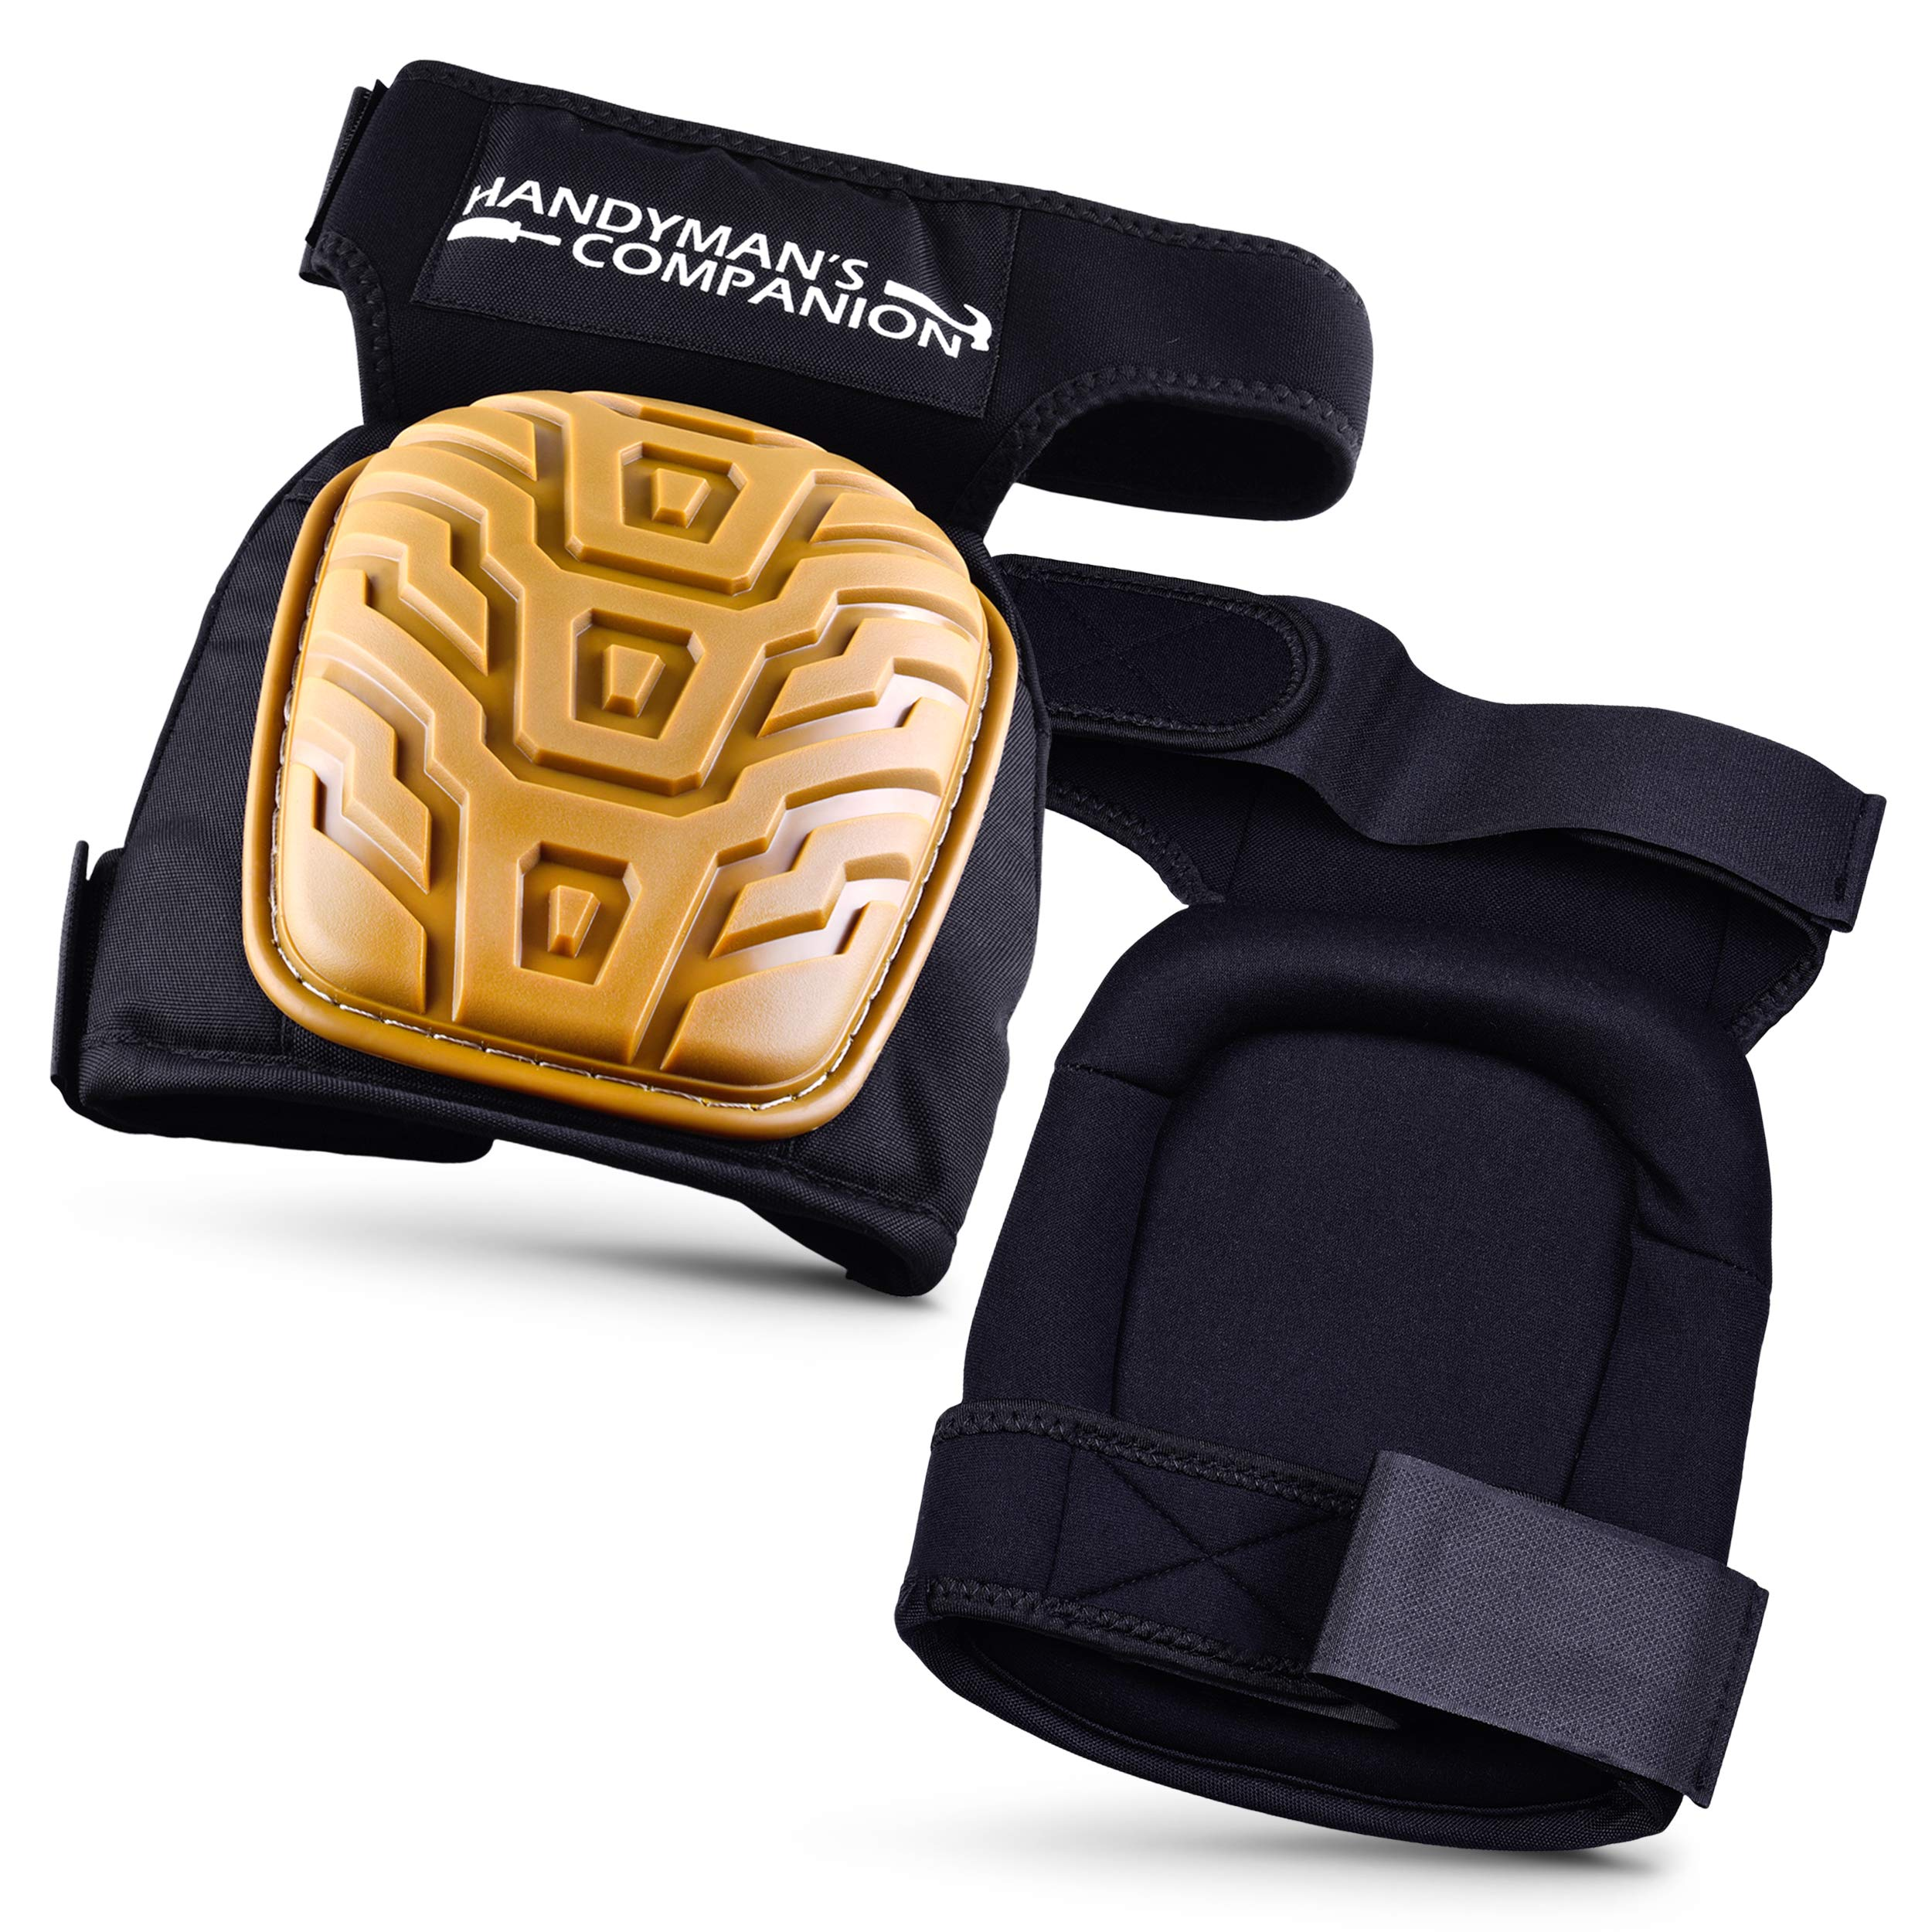 Handyman's Companion Heavy Duty Knee Pads for Work-Designed by a Concrete Finisher to Please your Knees when doing Construction, Flooring, Gardening, Cleaning